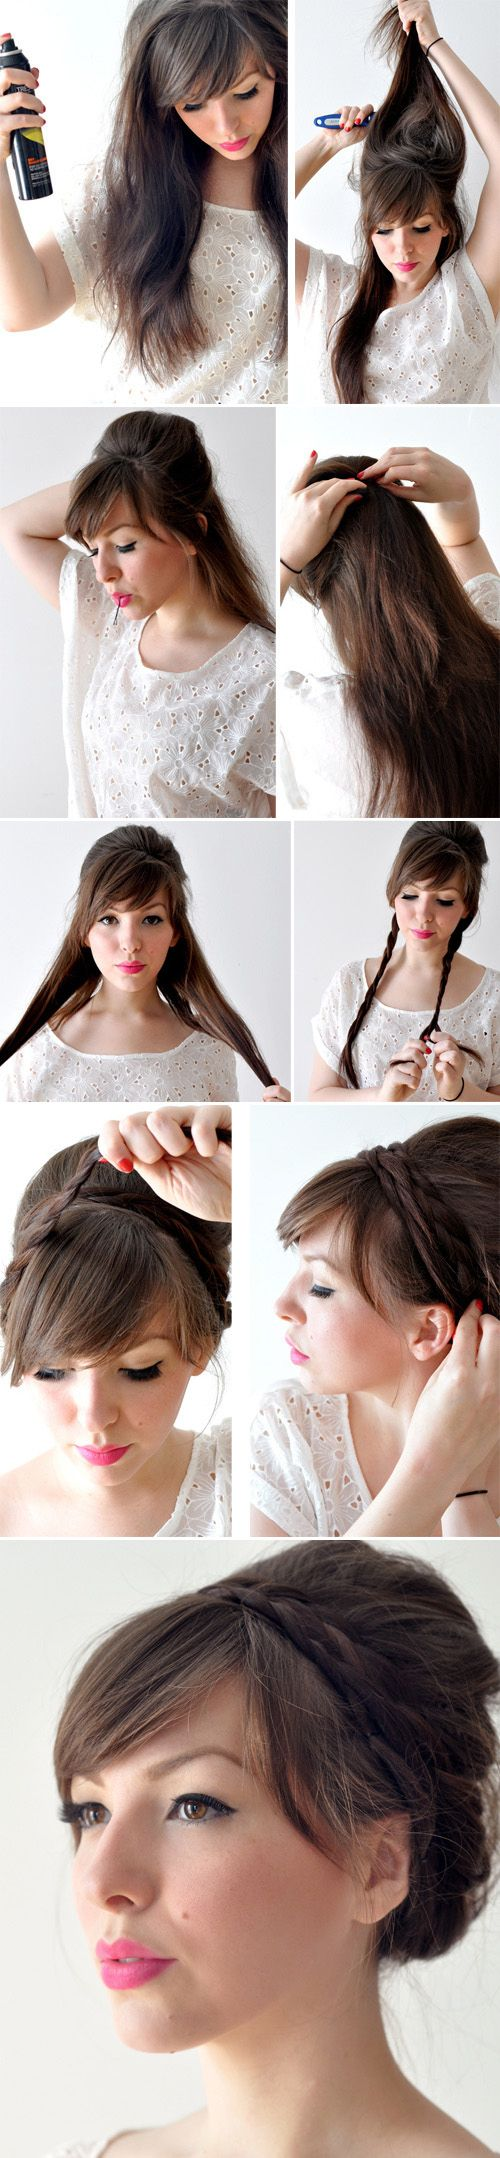 best images about hair styles on pinterest rockabilly updo